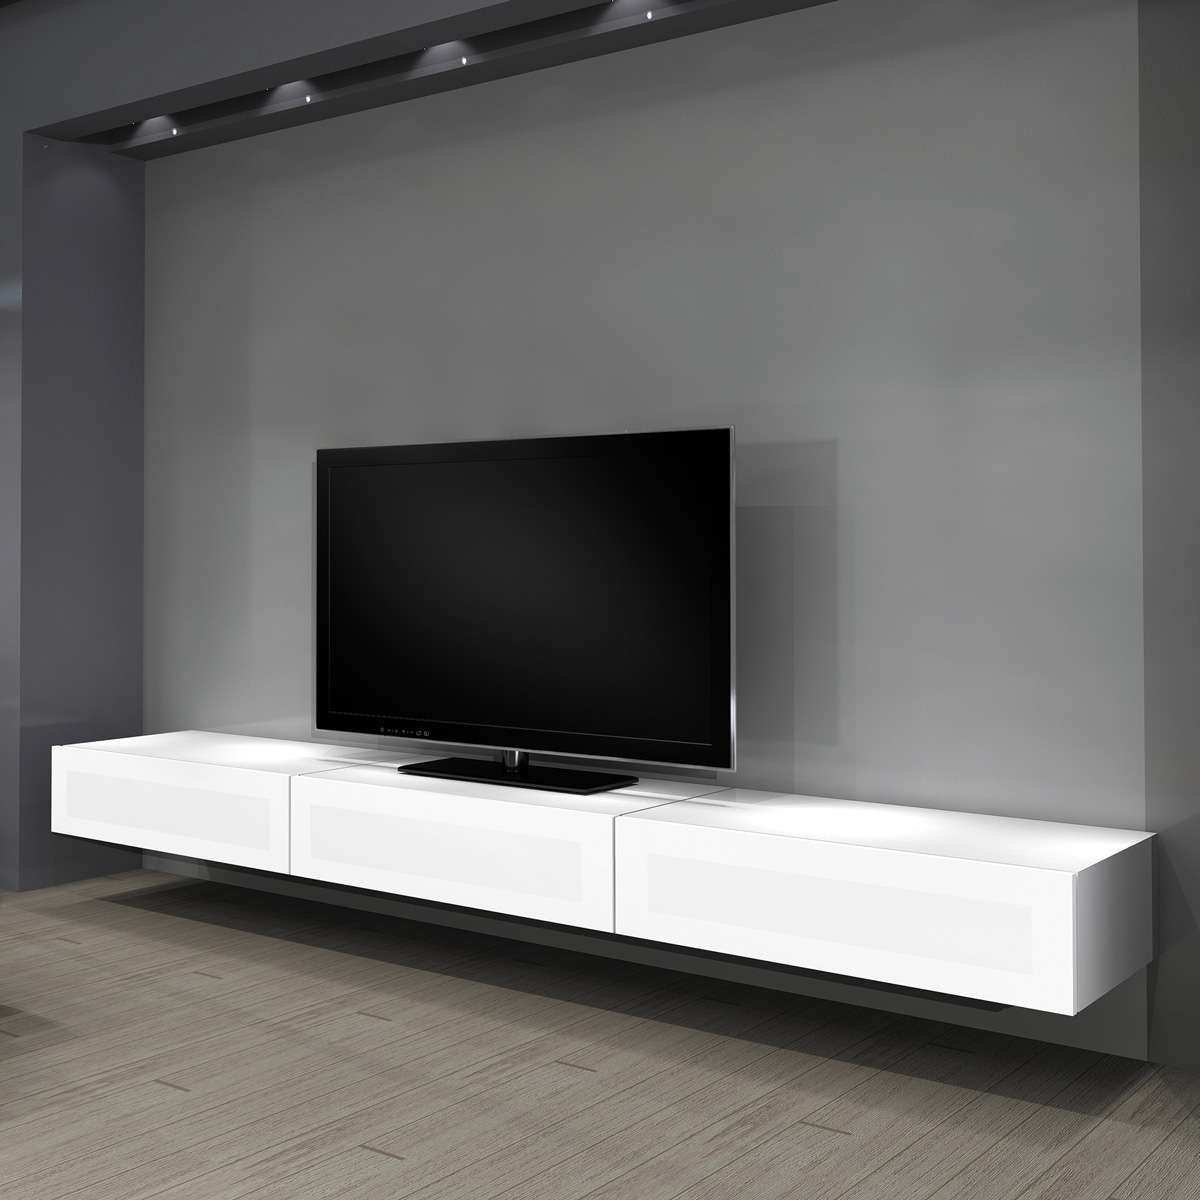 Nice Grey Concrete Wall Of The Ikea Tv Cabinet Wall Mount That Can Within Modern Tv Stands With Mount (View 6 of 15)